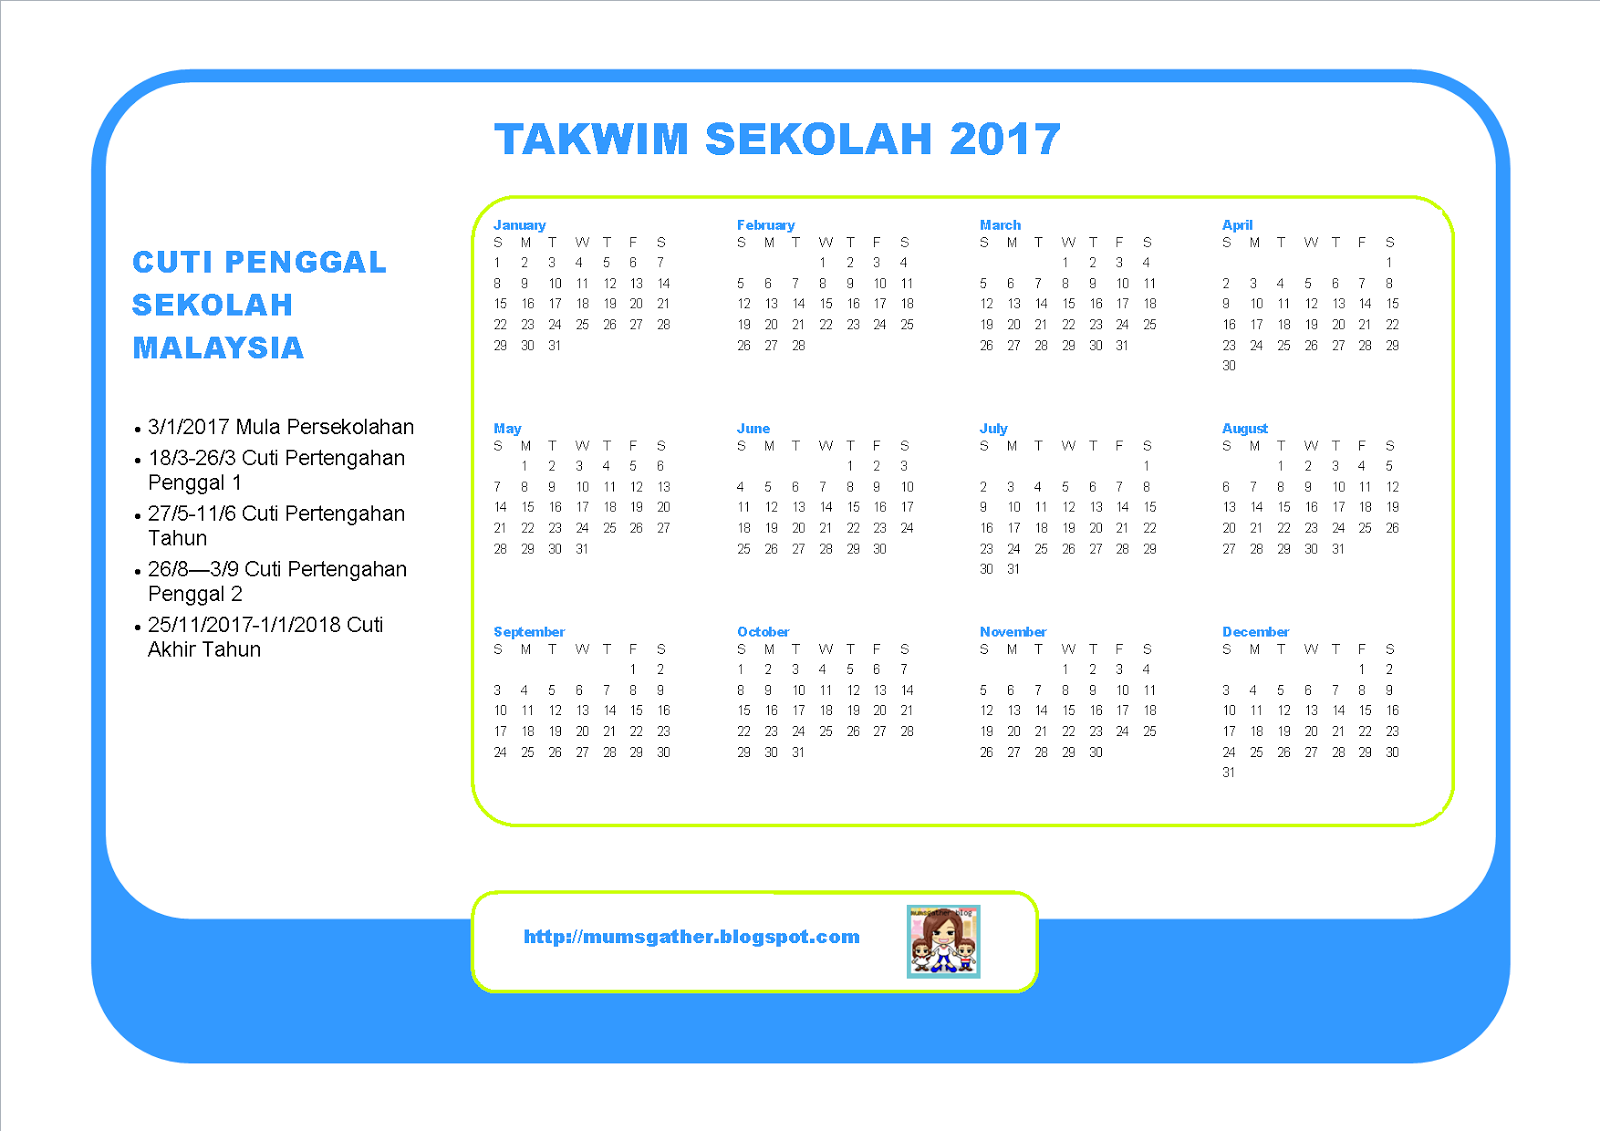 the malaysia school holiday calendar for 2017 or the takwim sekolah 2017 is officially out above is our sample of the 2017 school calendar